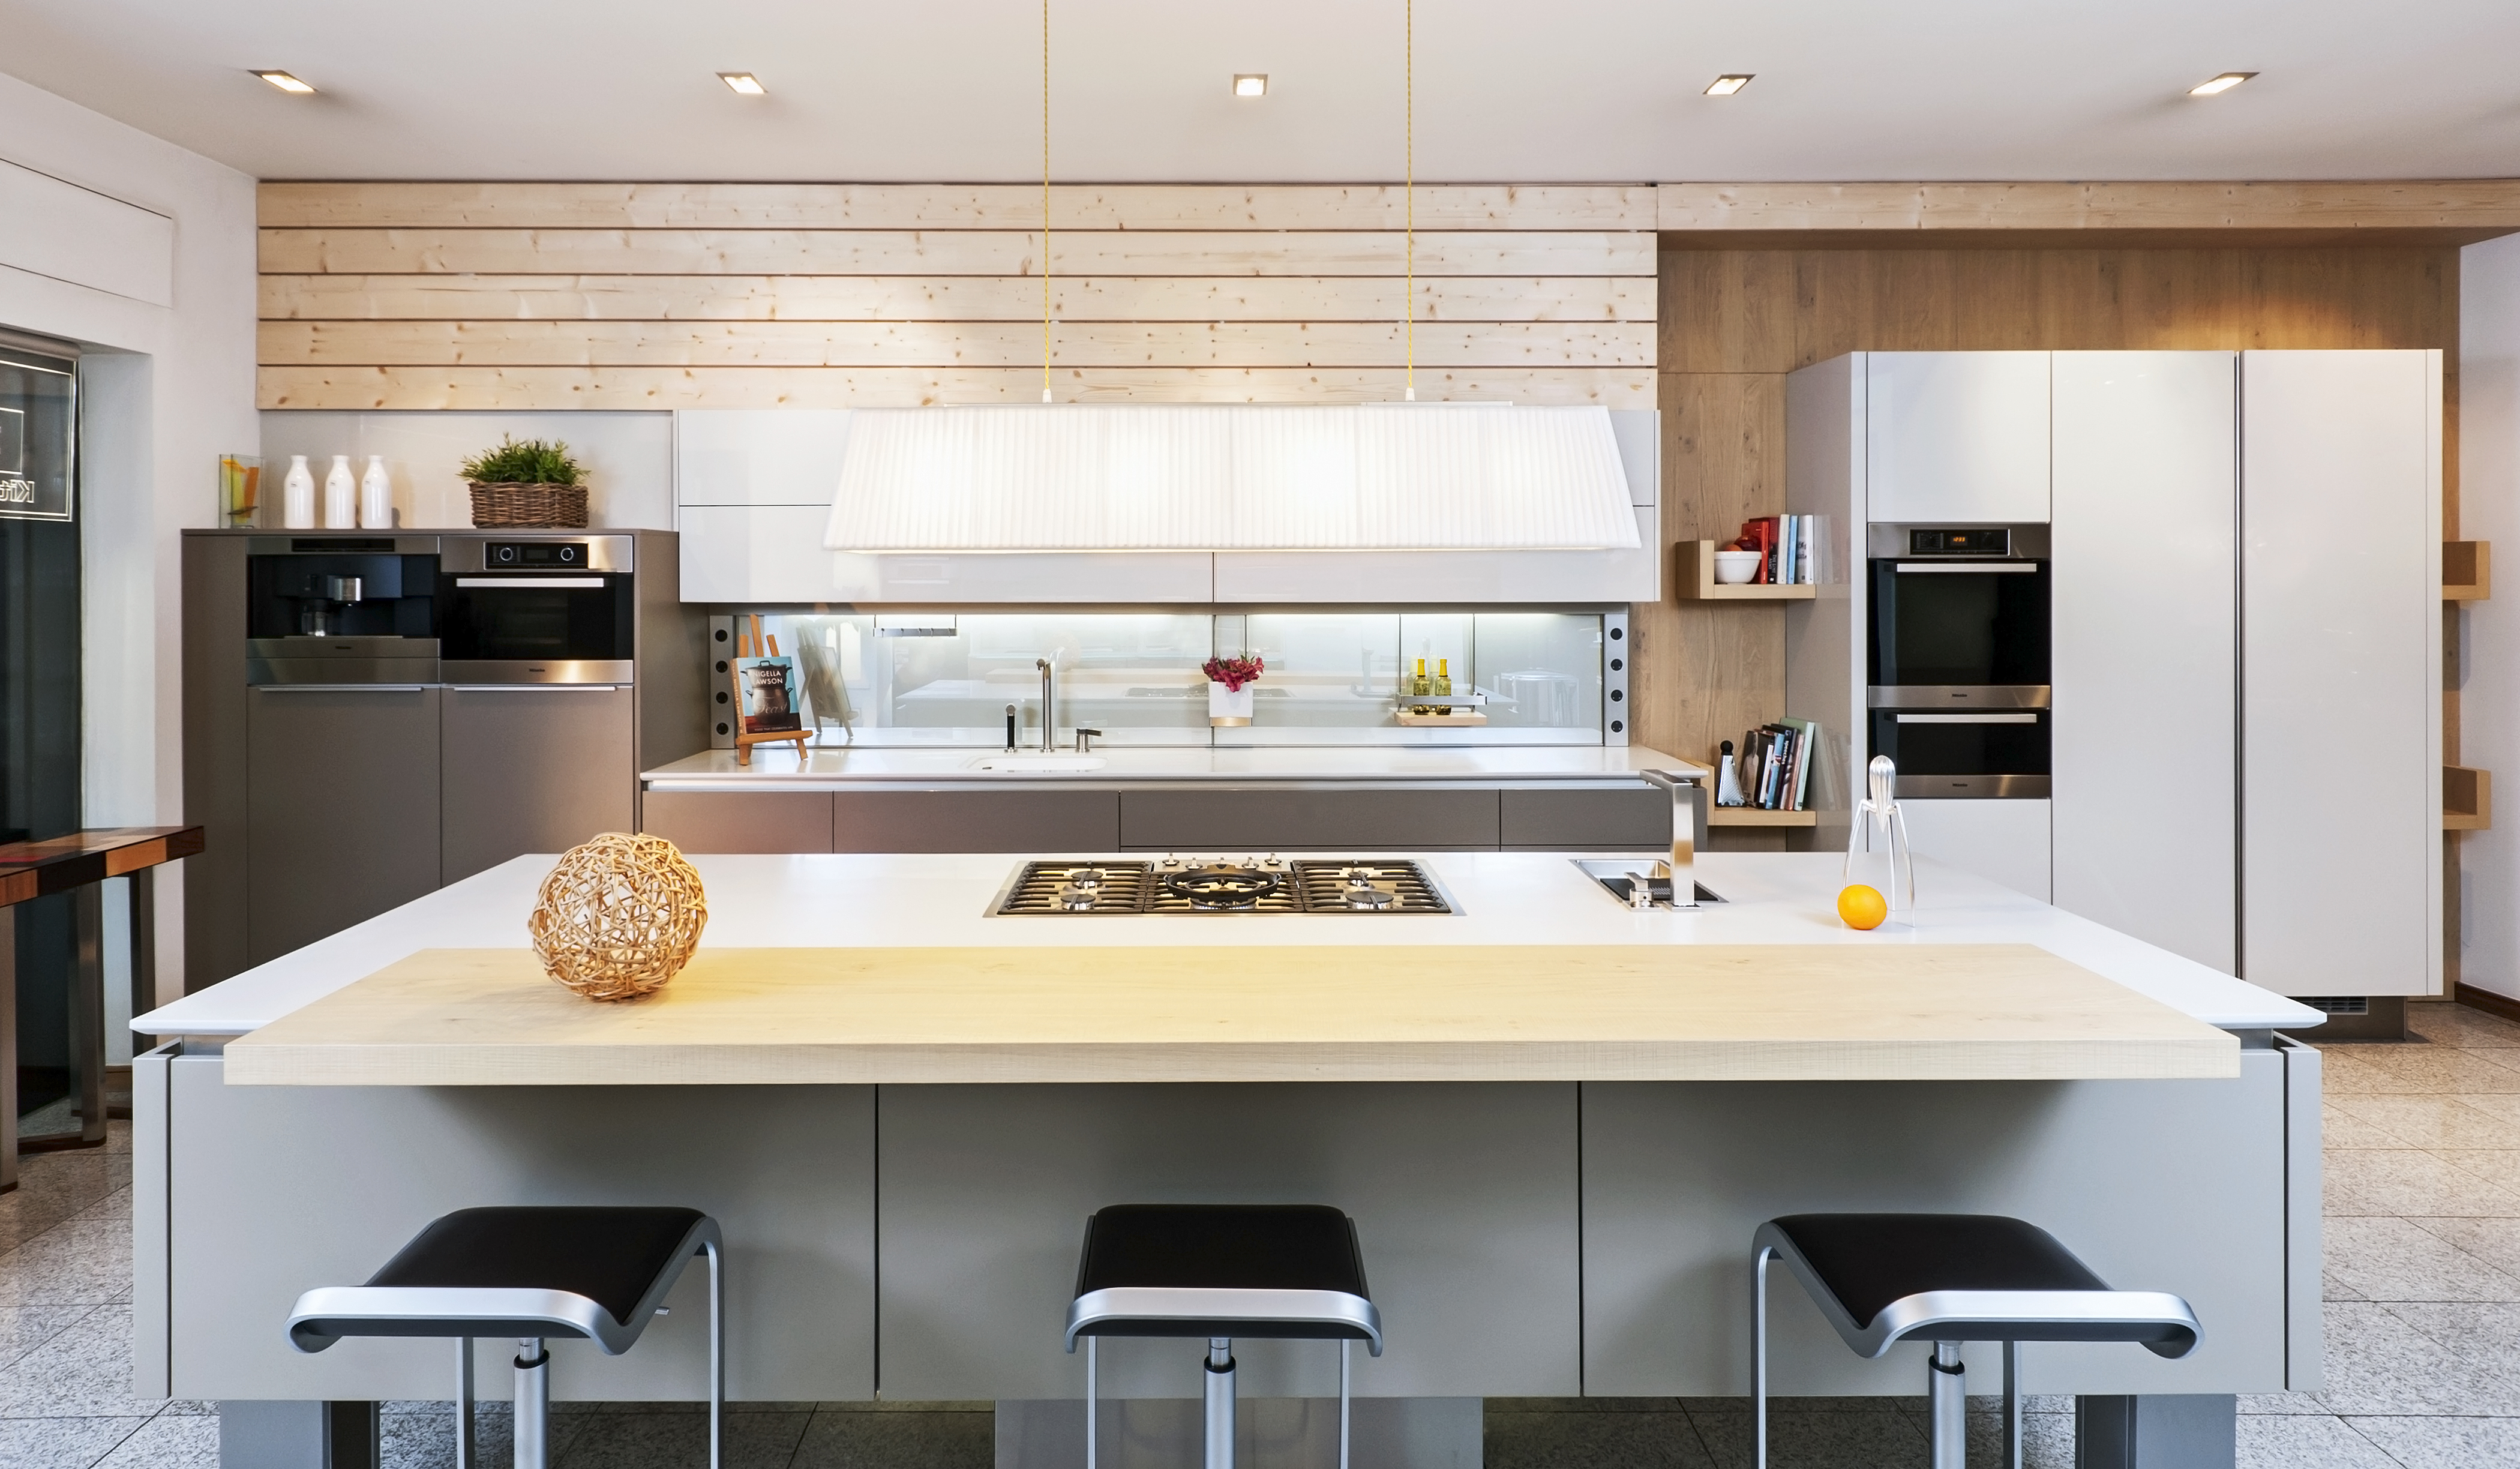 DISPLAY FOR SALE - Arena Kitchens